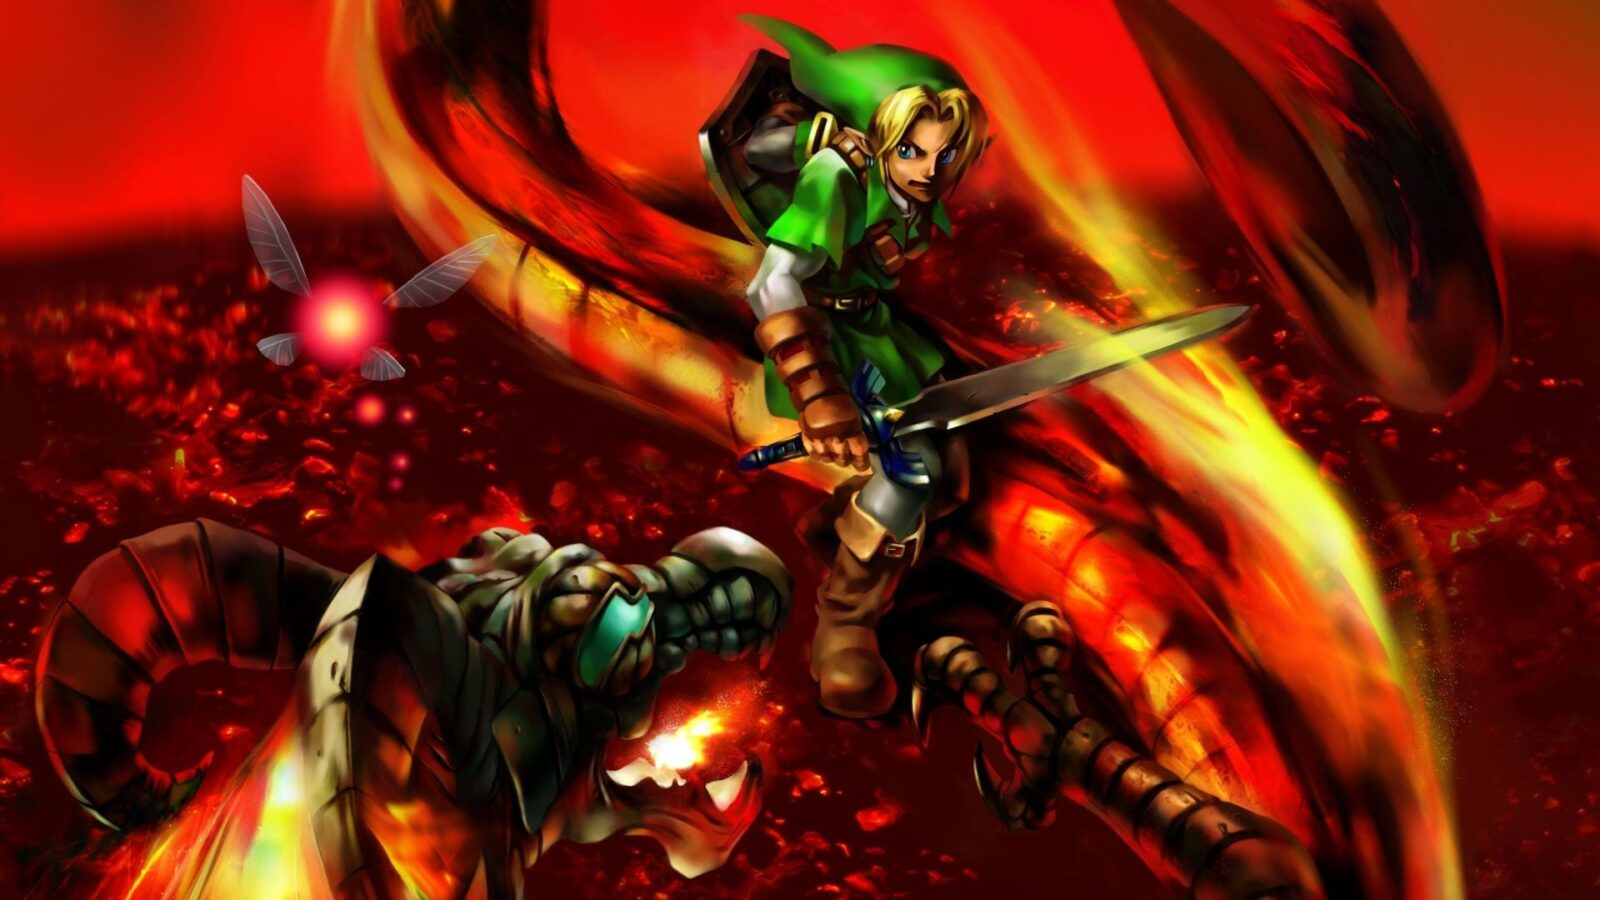 awesome zelda iphone wallpapers